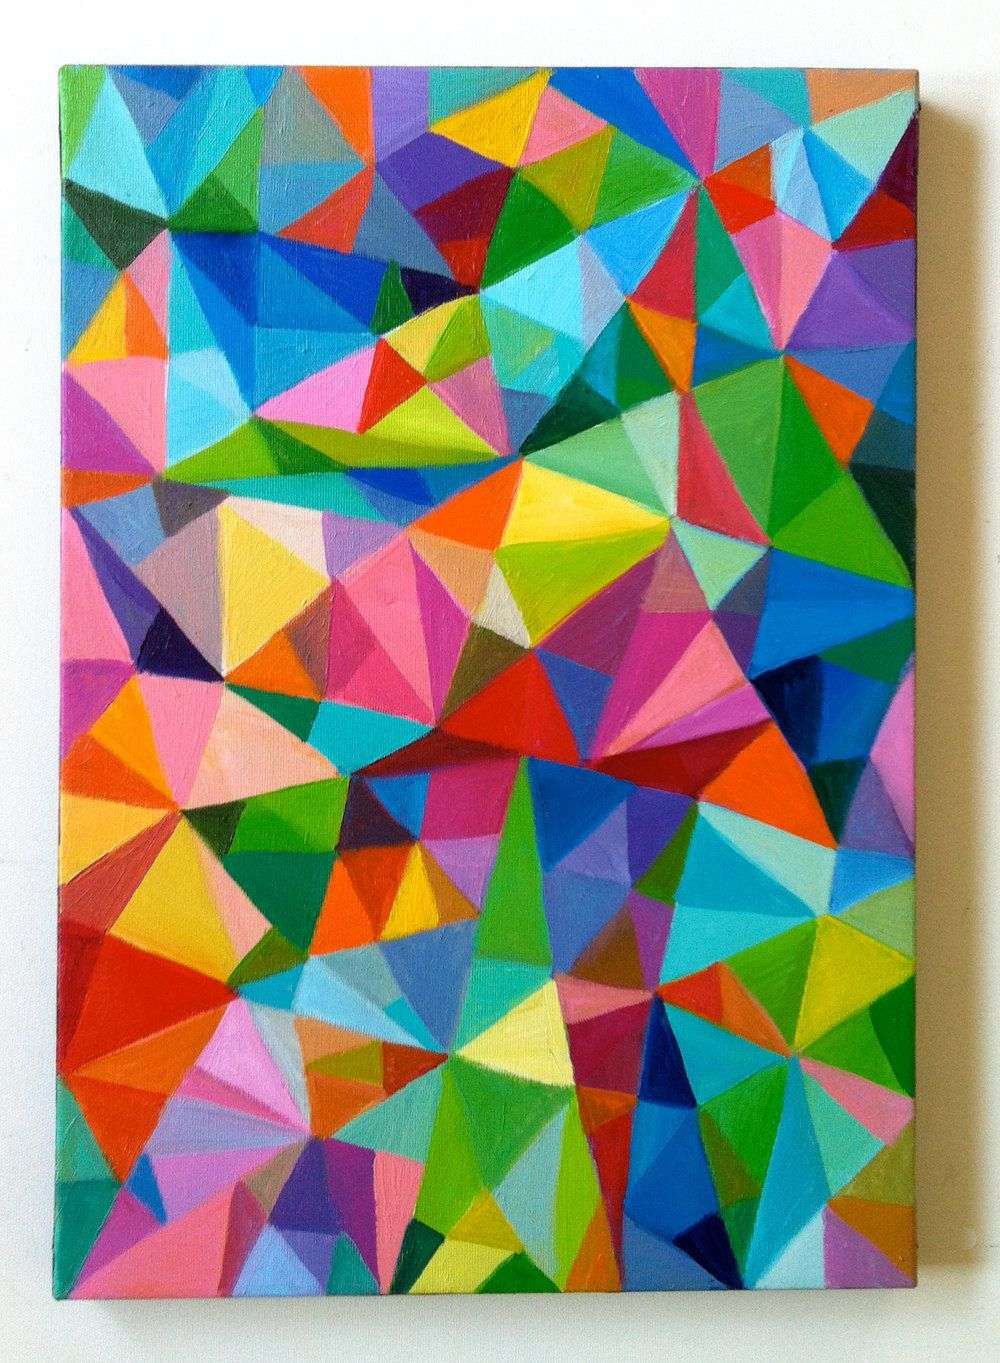 Abstract Painting Triangles Home Decor Mosaic Rainbow